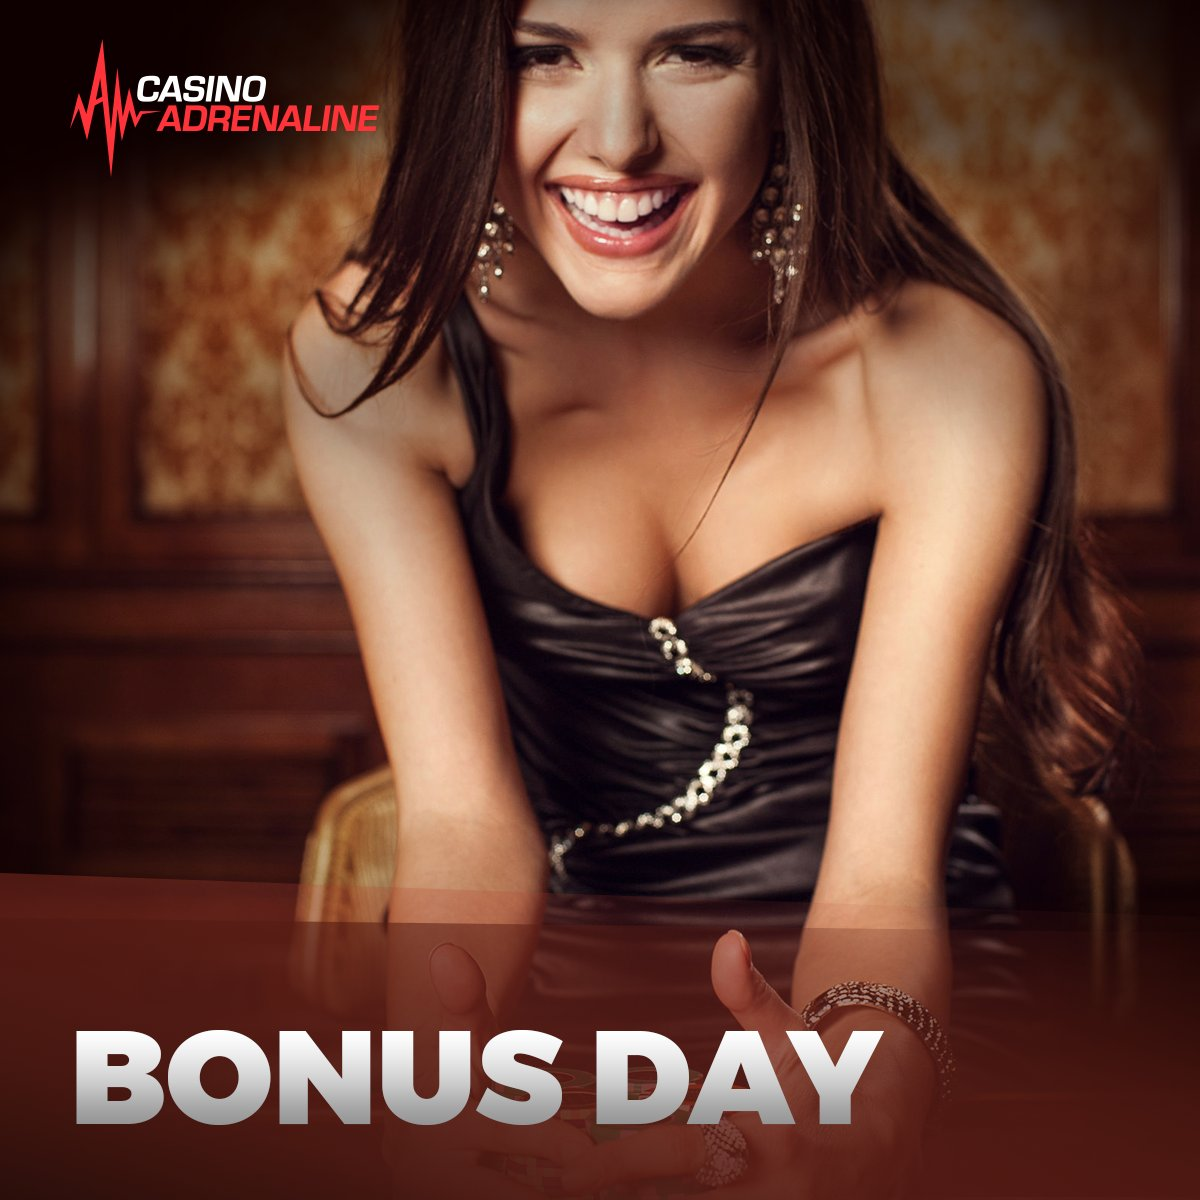 test Twitter Media - Don't miss our Bonus Day! Check out our web page every day and be ready to grab it! 😁 #CasinoAdrenaline #bonusday Stay tuned: https://t.co/M81OSRlmqx https://t.co/jB9L7VxXFu